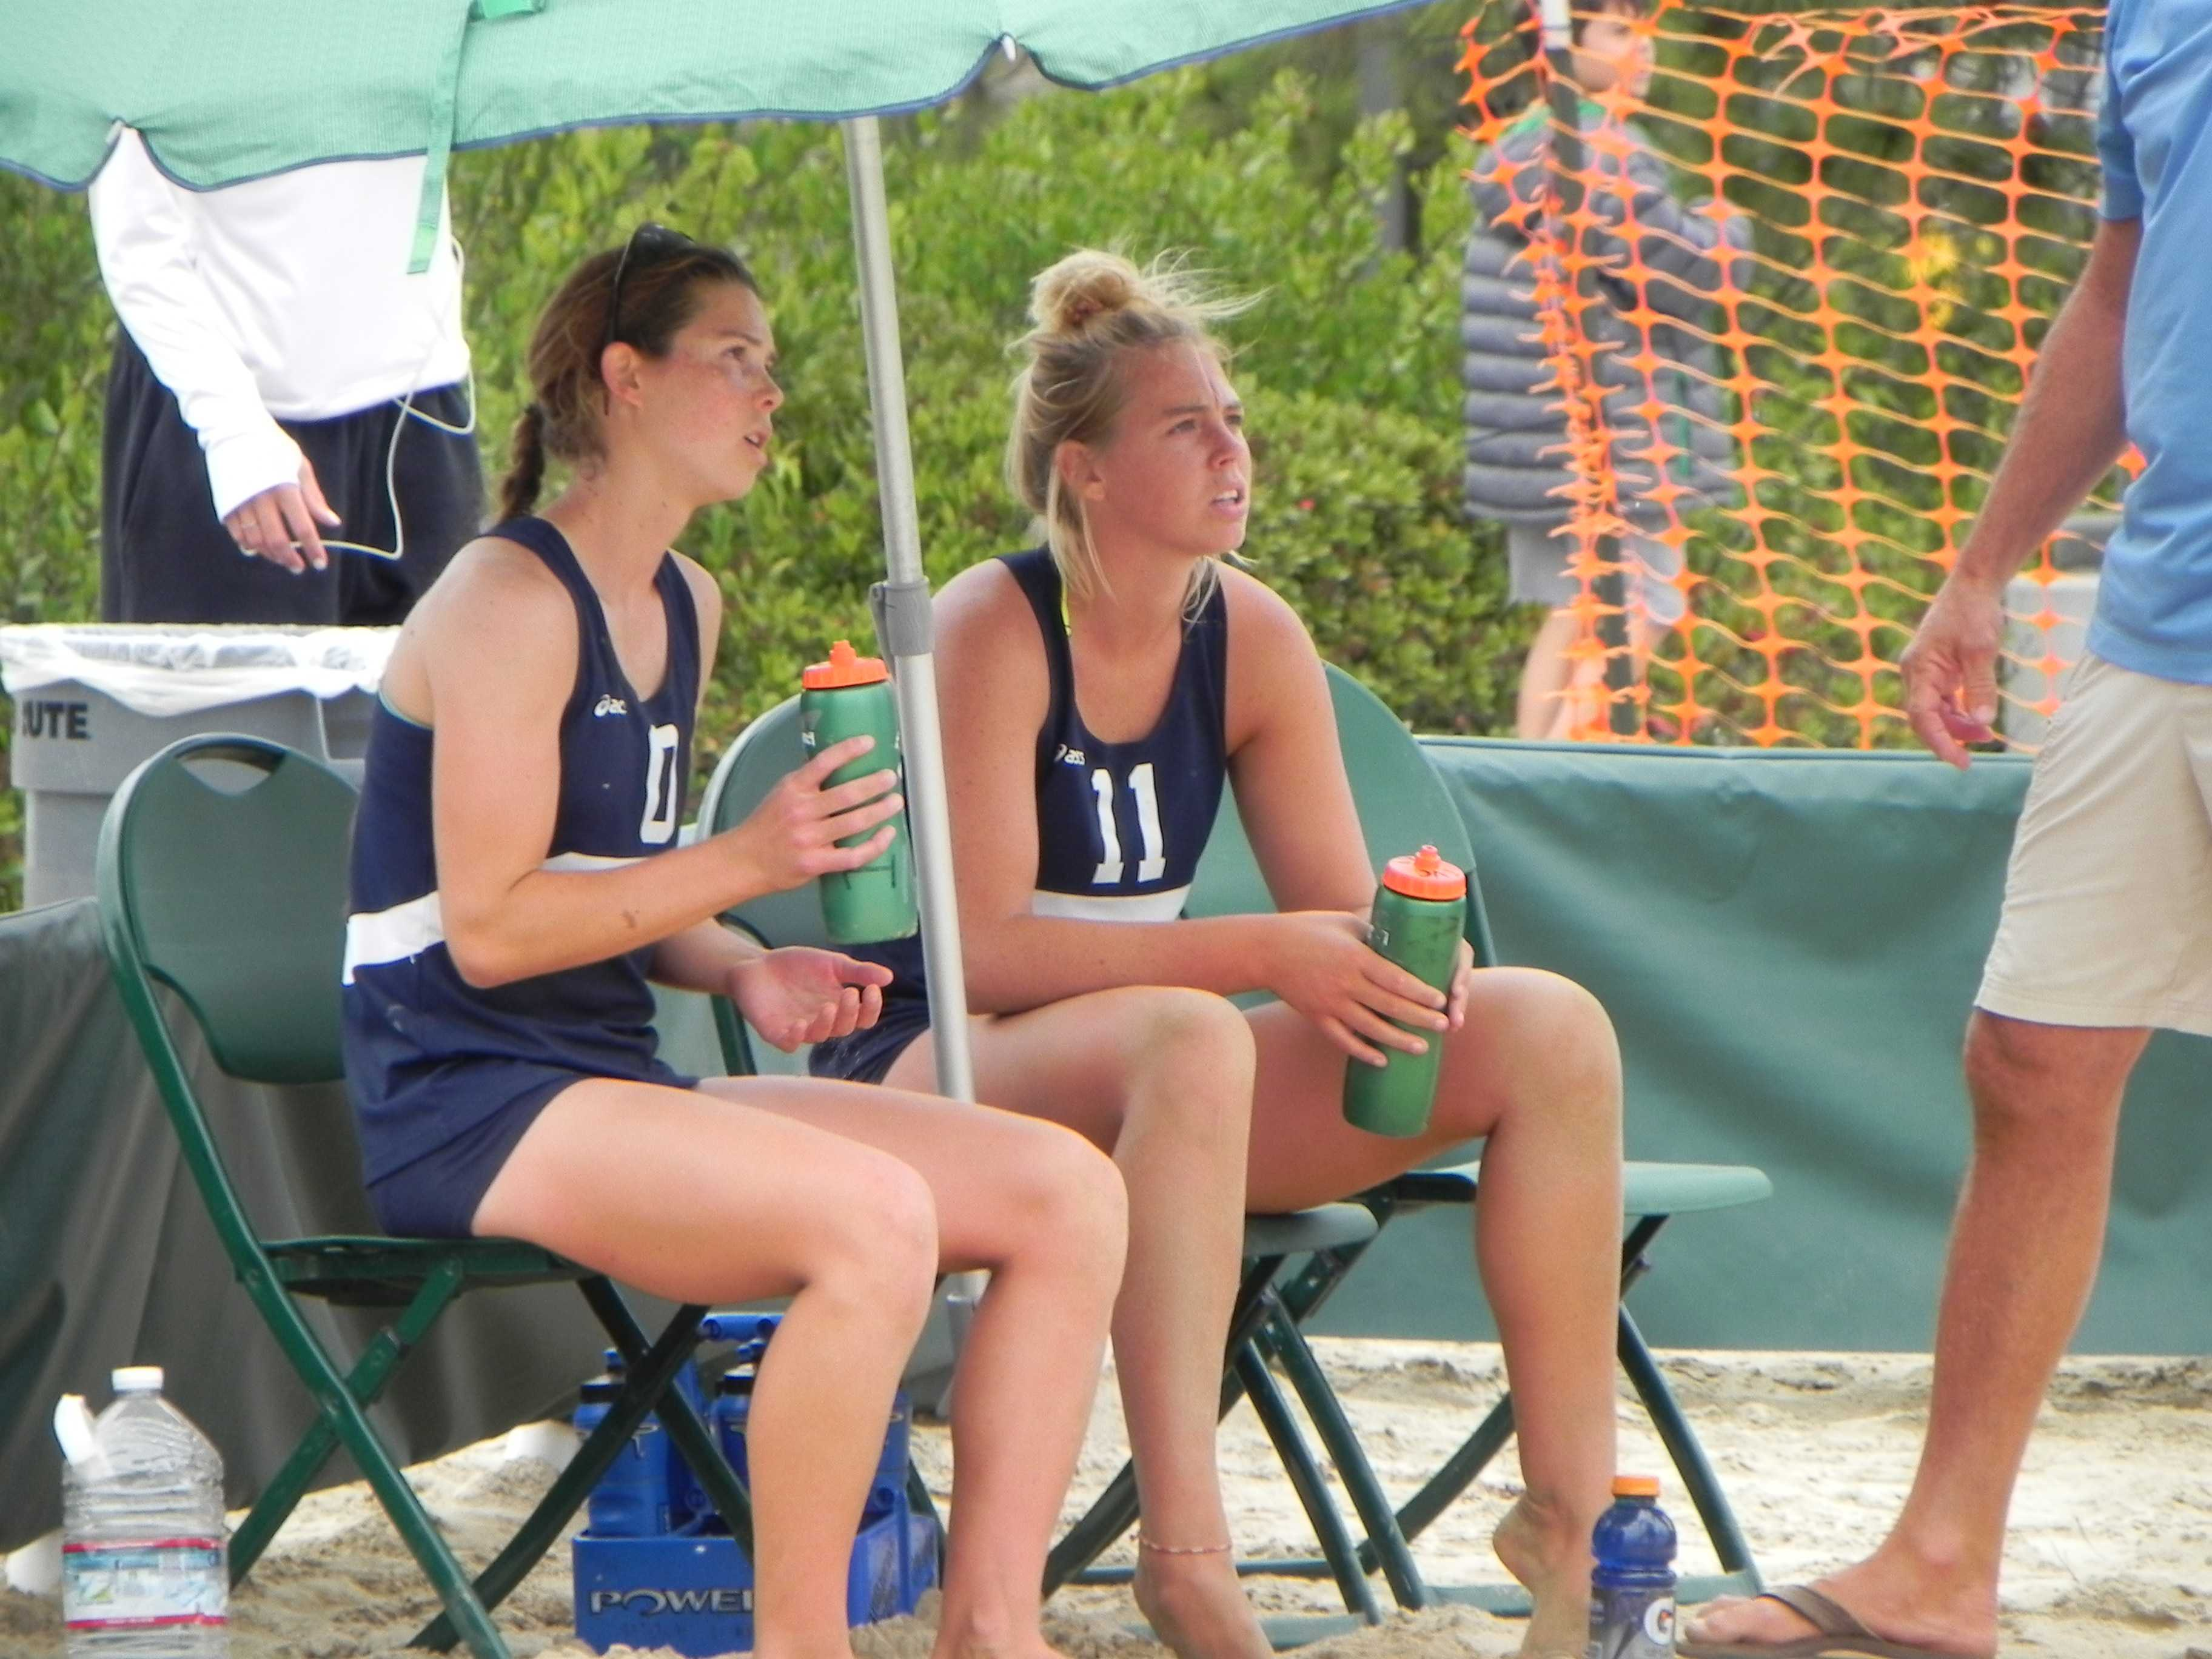 Emily Reinking (left) and Hailee Earnest, of Irvine Valley College, sit down and listen to their coach in between set one and two of the championship match at Grossmont on Sunday. Reinking and Earnest were the No. 3 overall seed and beat the No. 4 seed of Cady Francis and Brianna Sizemore in two sets in the finals, 21-15, 21-18. Photo credit: Phil Sidavong